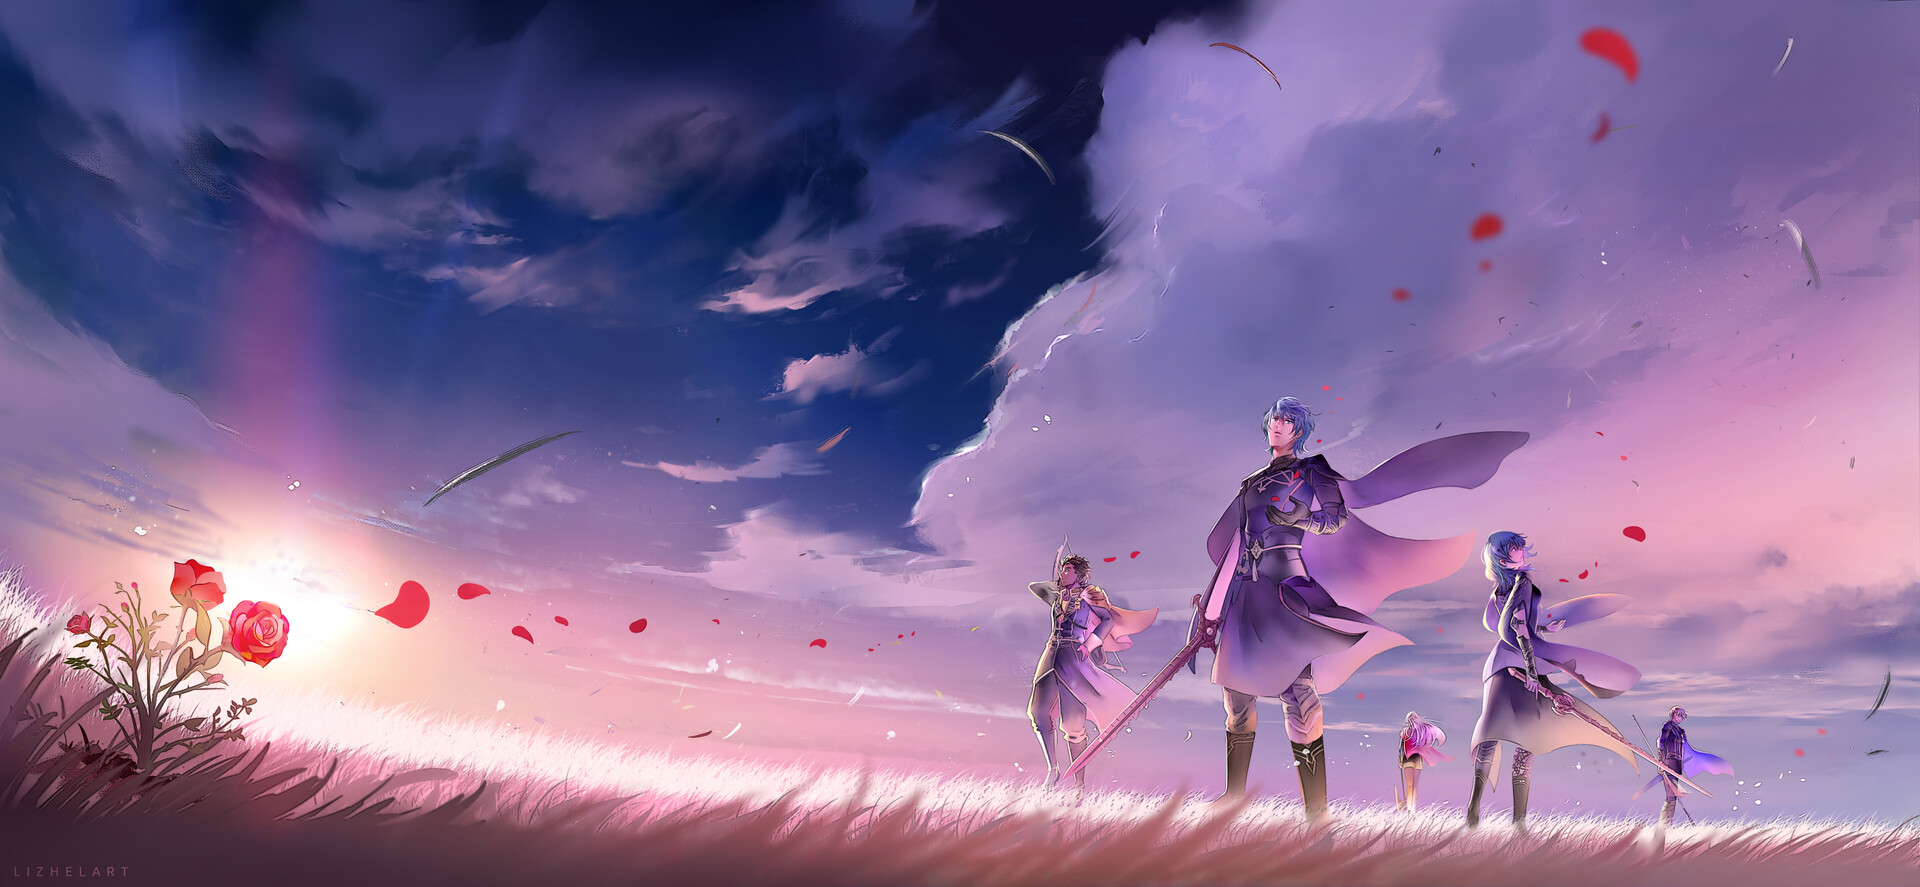 Fire Emblem Three Houses The Edge Of Dawn Fanart Wallpaper Full